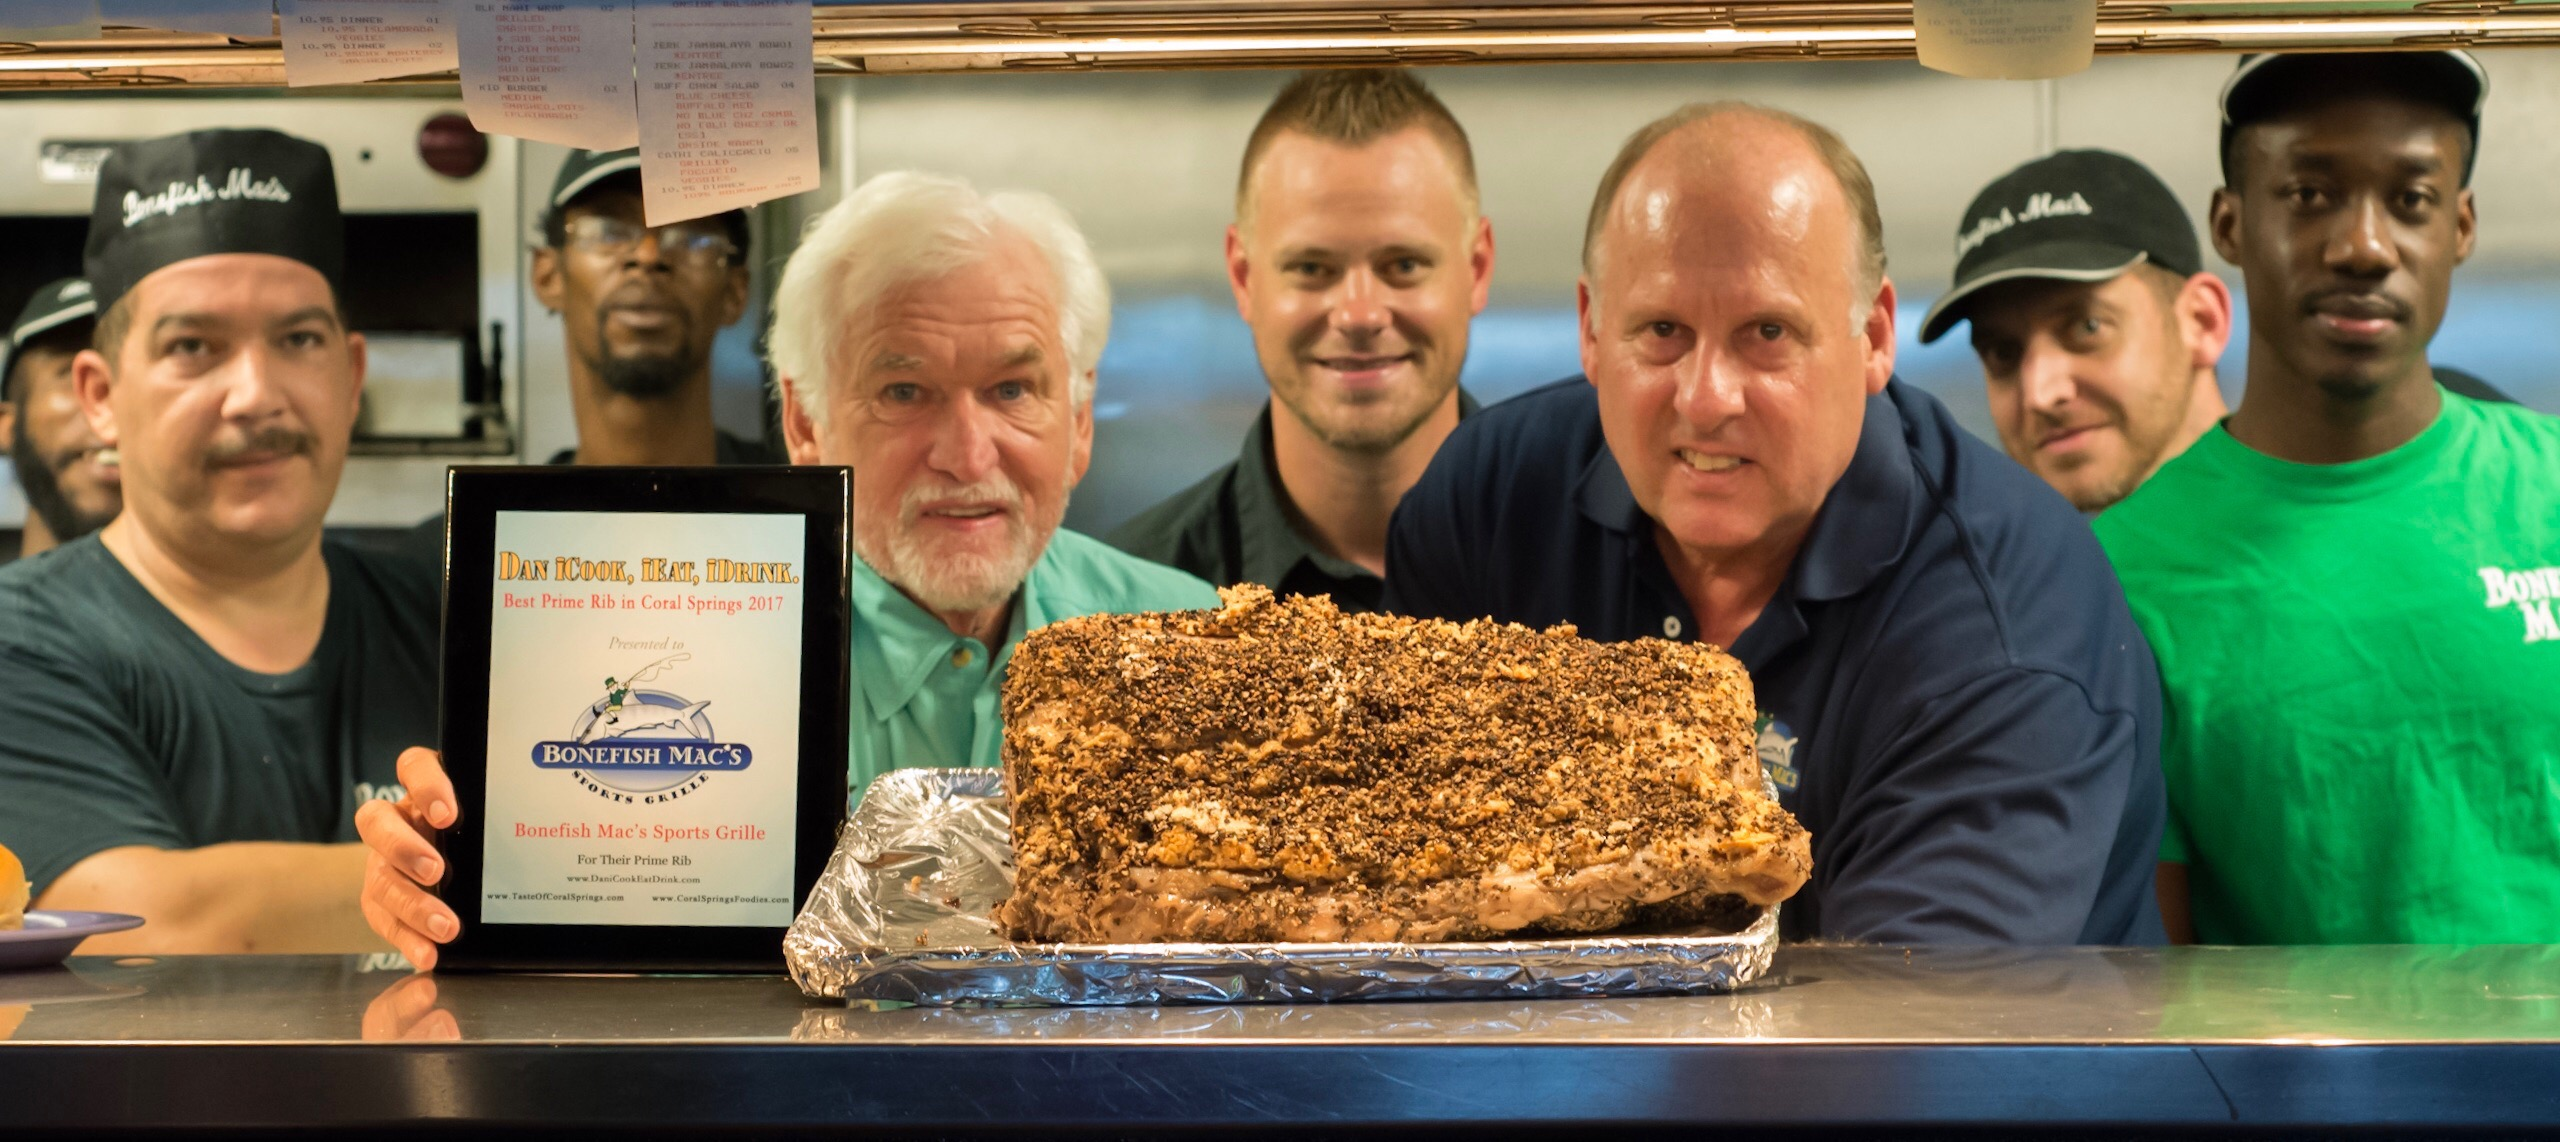 The winning Prime Rib in all its glory! Left to right: Q, Julio, Dawud, owner Chuck, PJ, Bill, James and Carl